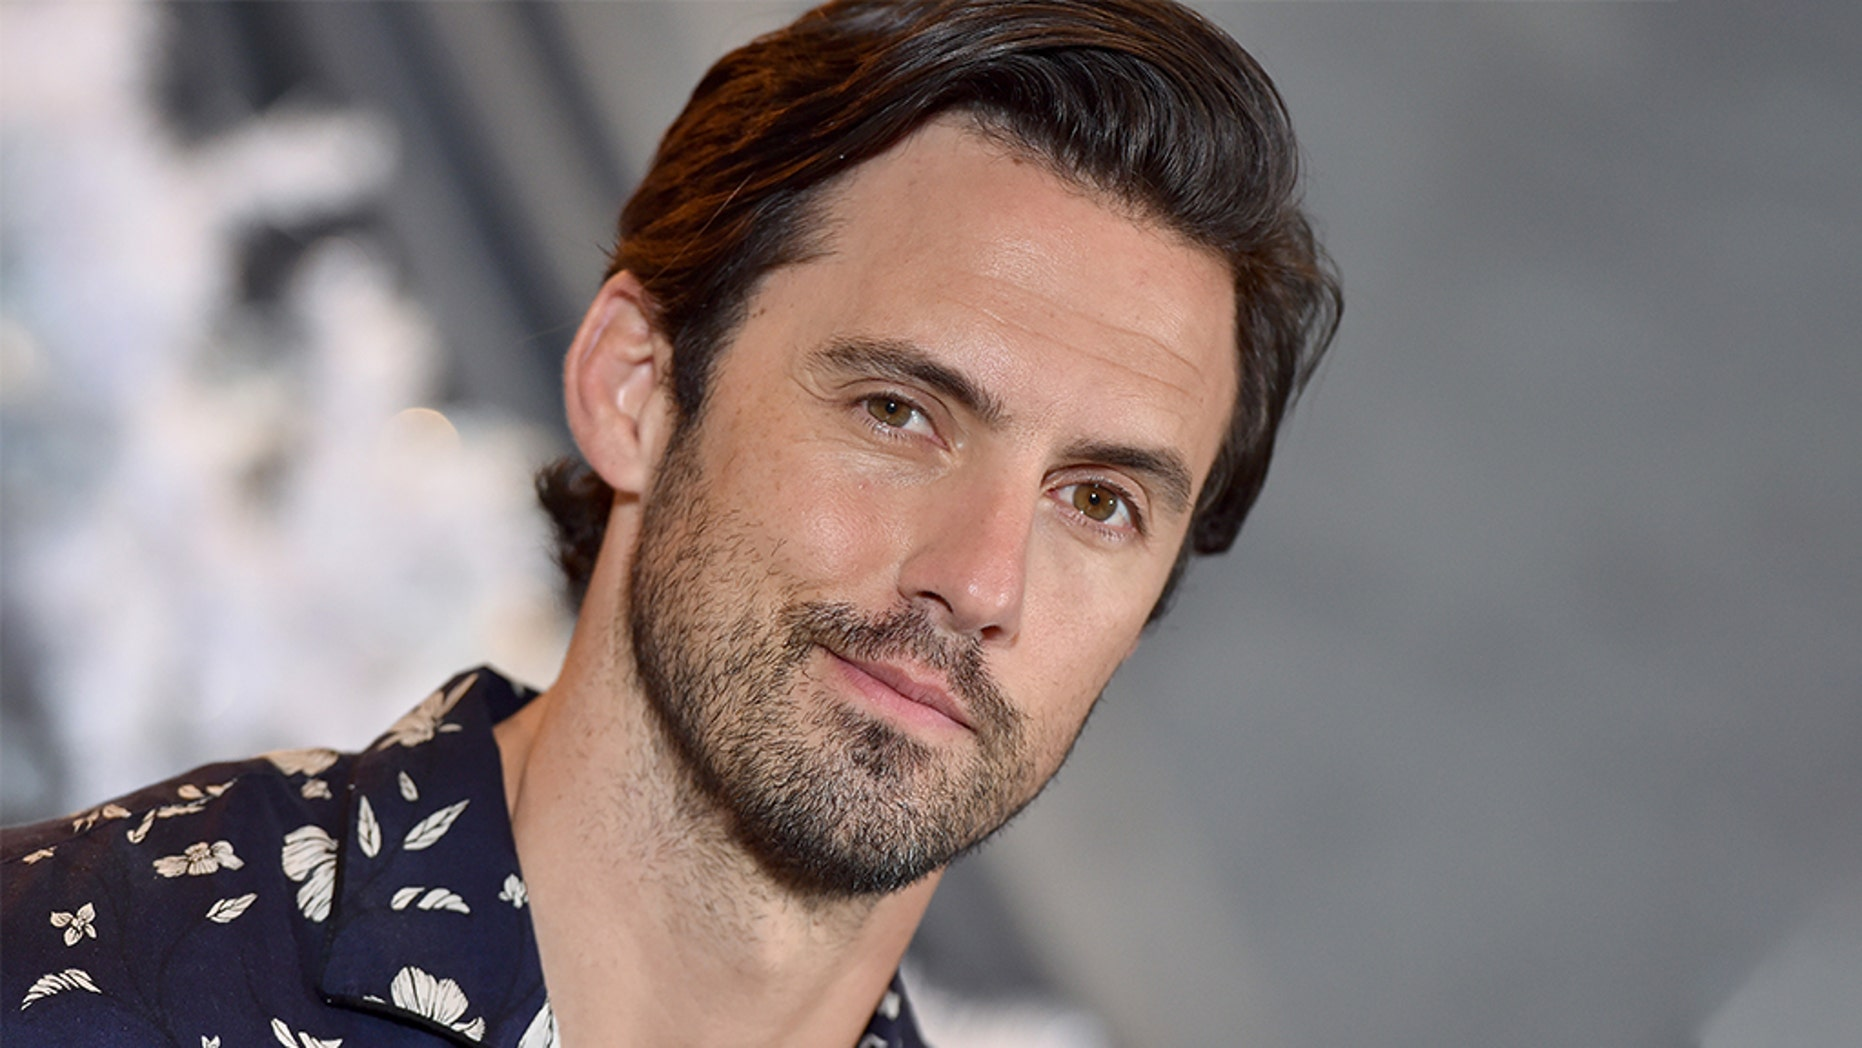 Milo Ventimiglia revealed in a new interview published on Monday that he almost quit acting.